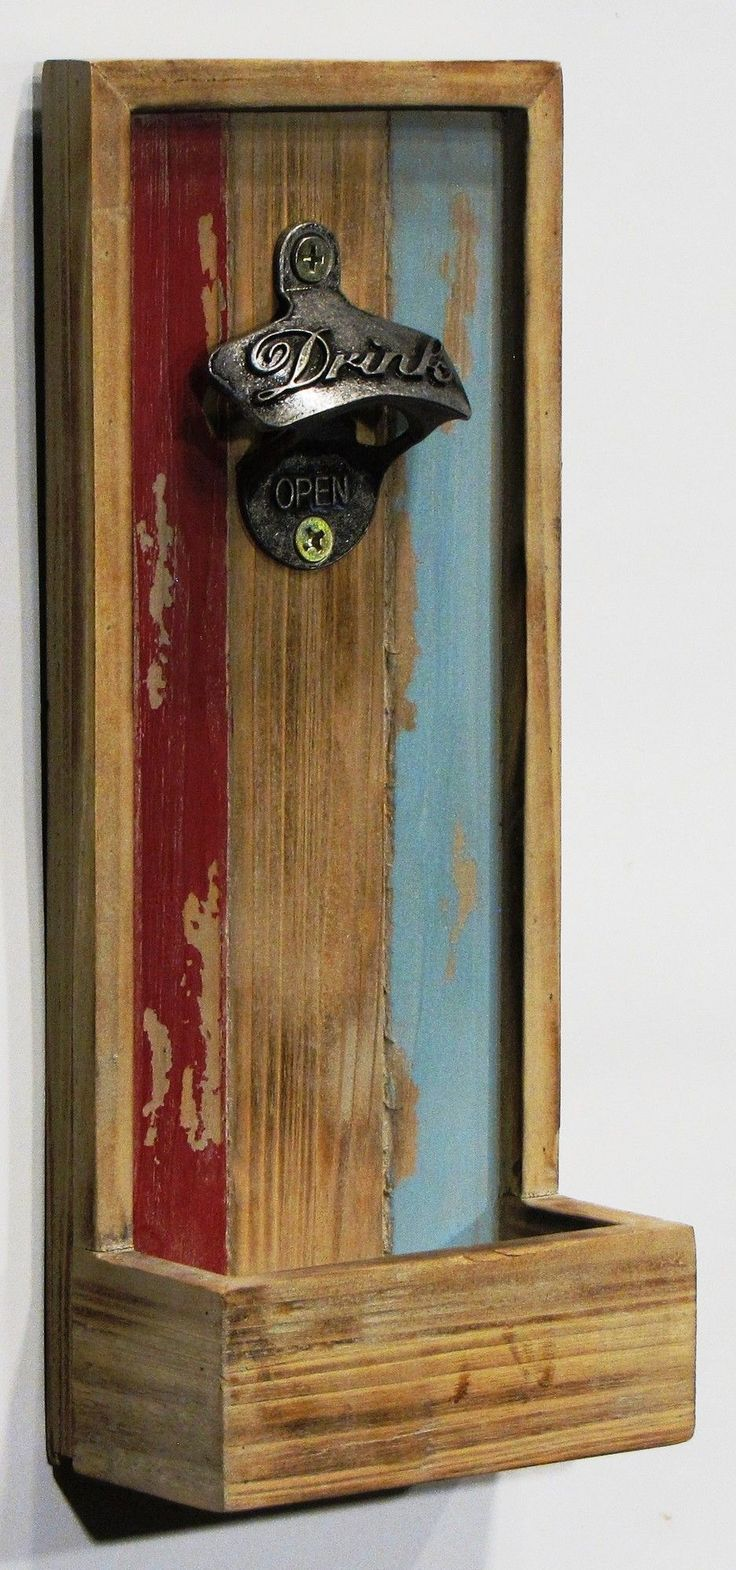 Features:  -Distressed multi color.  -Mounts securely to wall using 2-keyhole hangars.  -Receptacle for bottle caps.  -Rustic style.  -Timberland collection.  -Hand-painted.  Subject: -Ornamental.  St